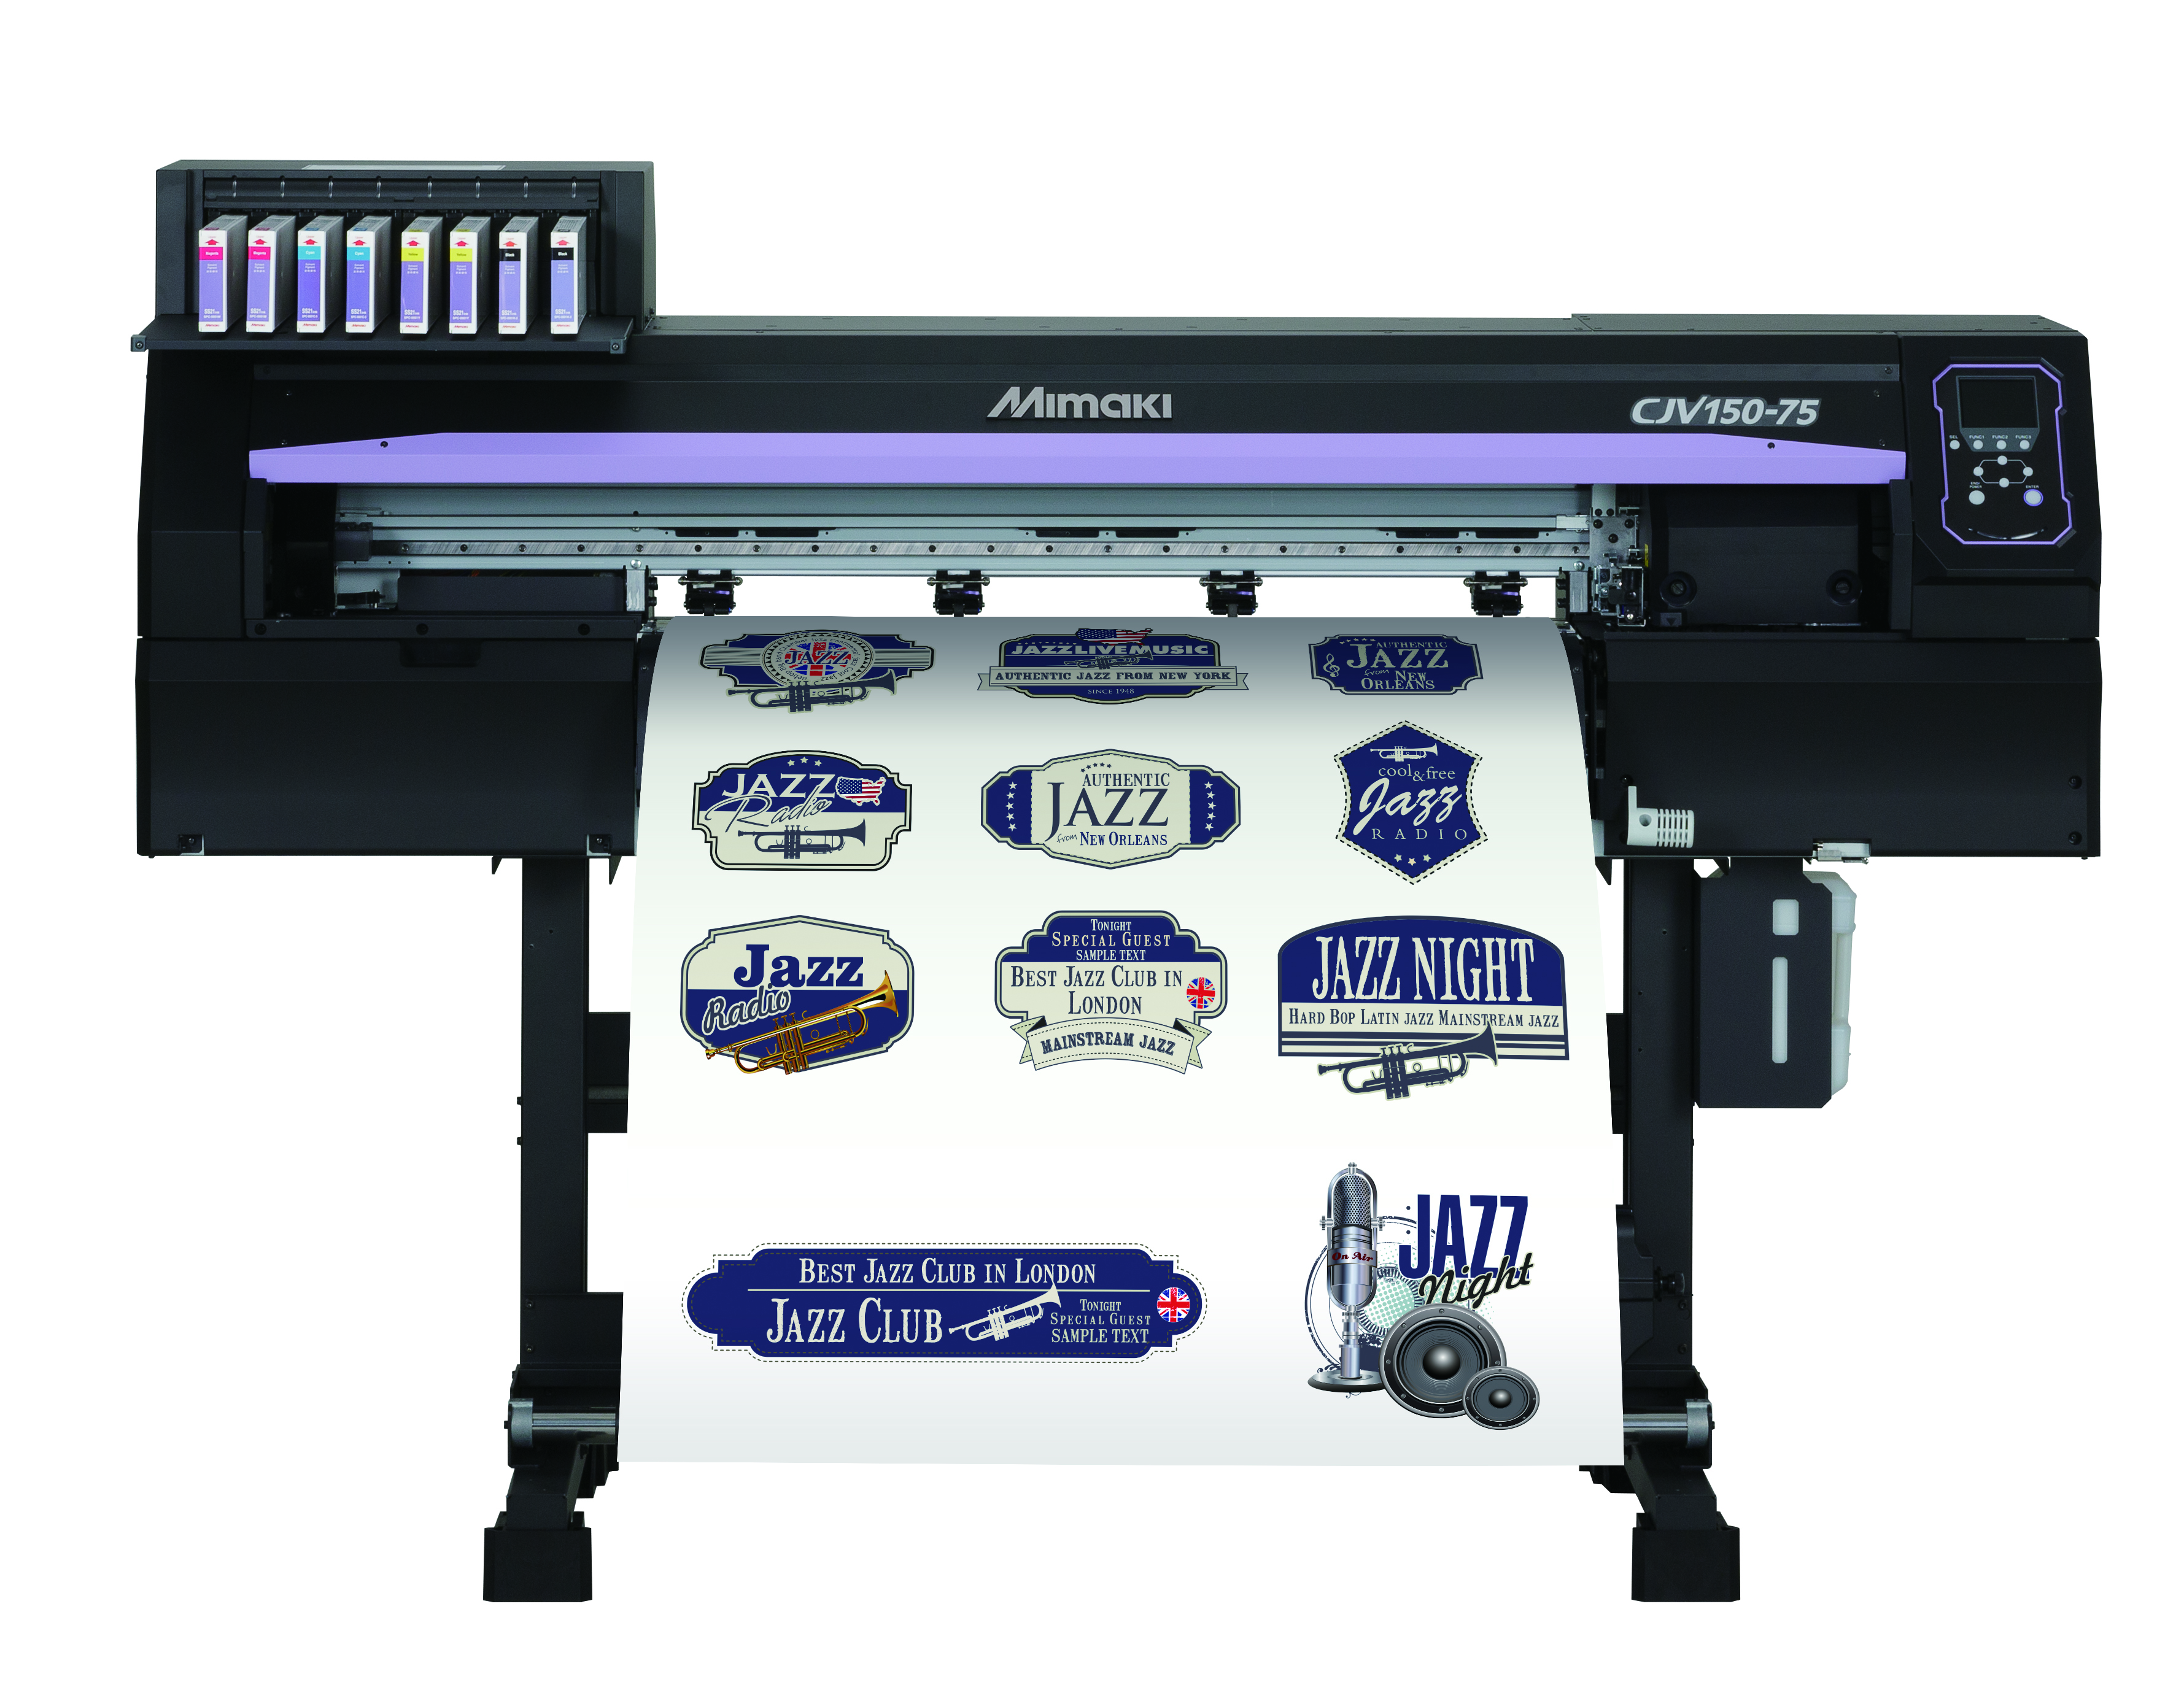 The smallest of Mimaki's new printer cutters is the CJV150-75